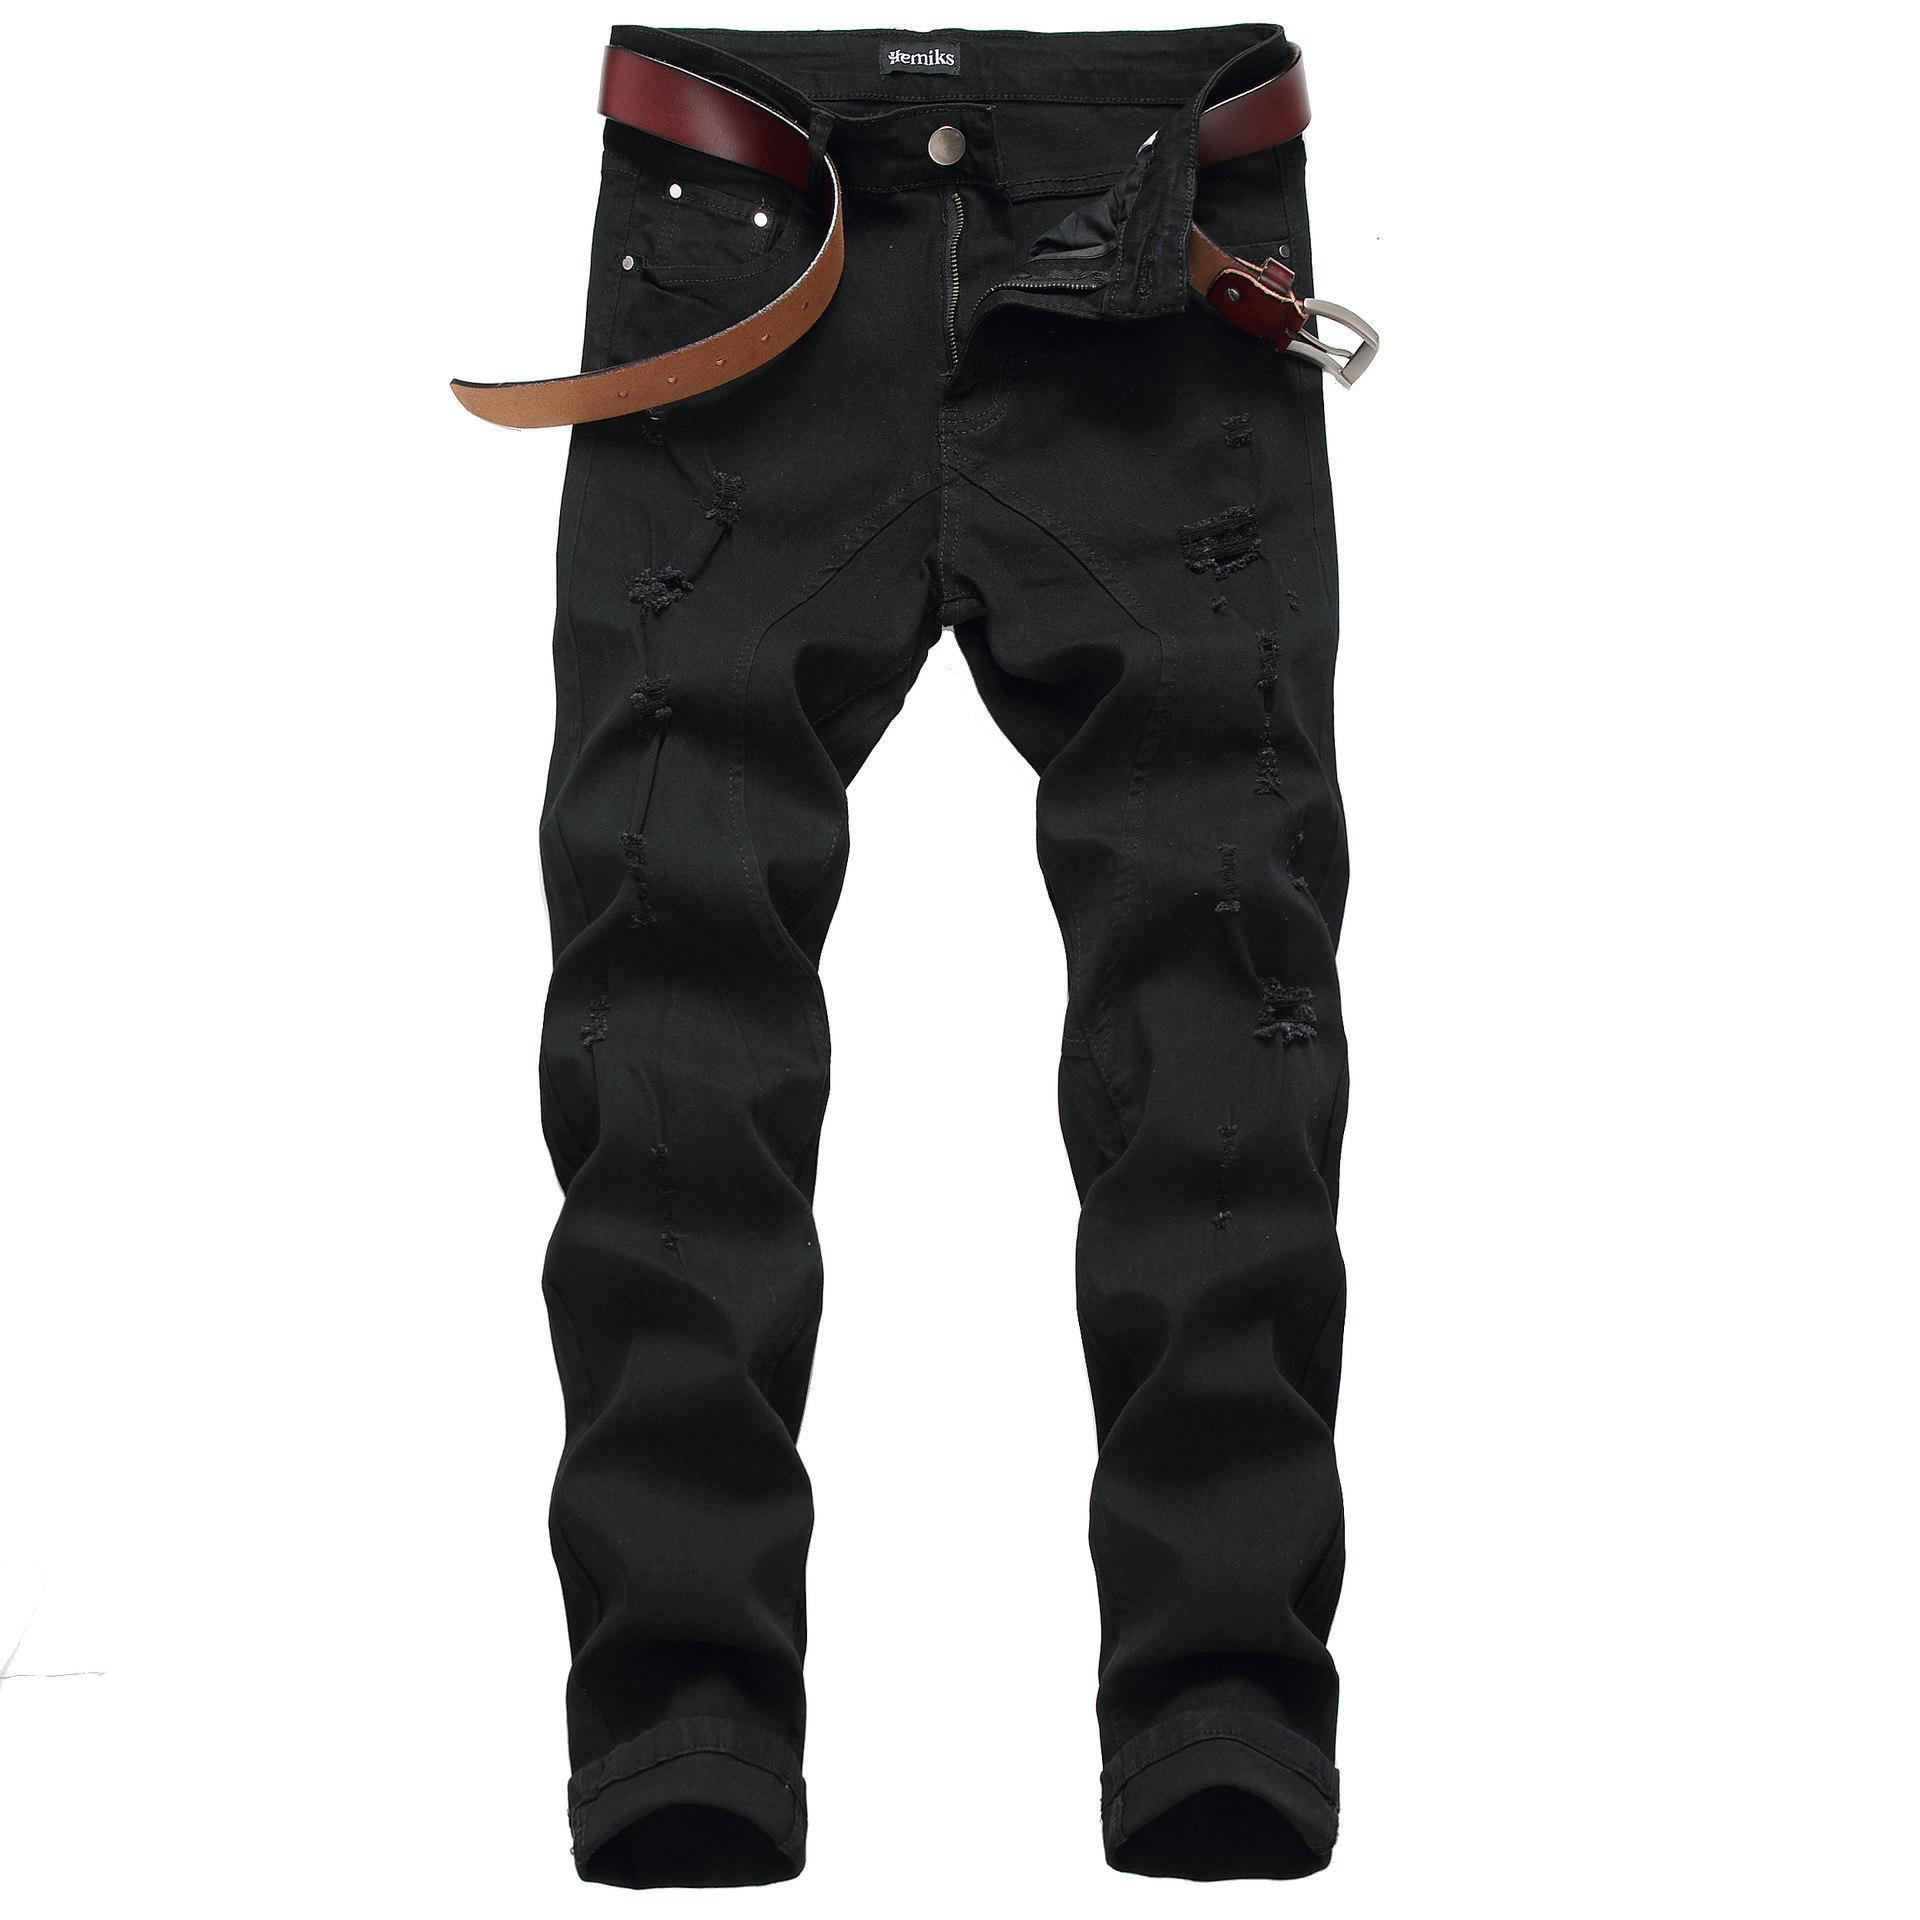 MEN'S WEAR Slim Fit With Holes Jeans Style North America Tattered Autumn And Winter Jeans